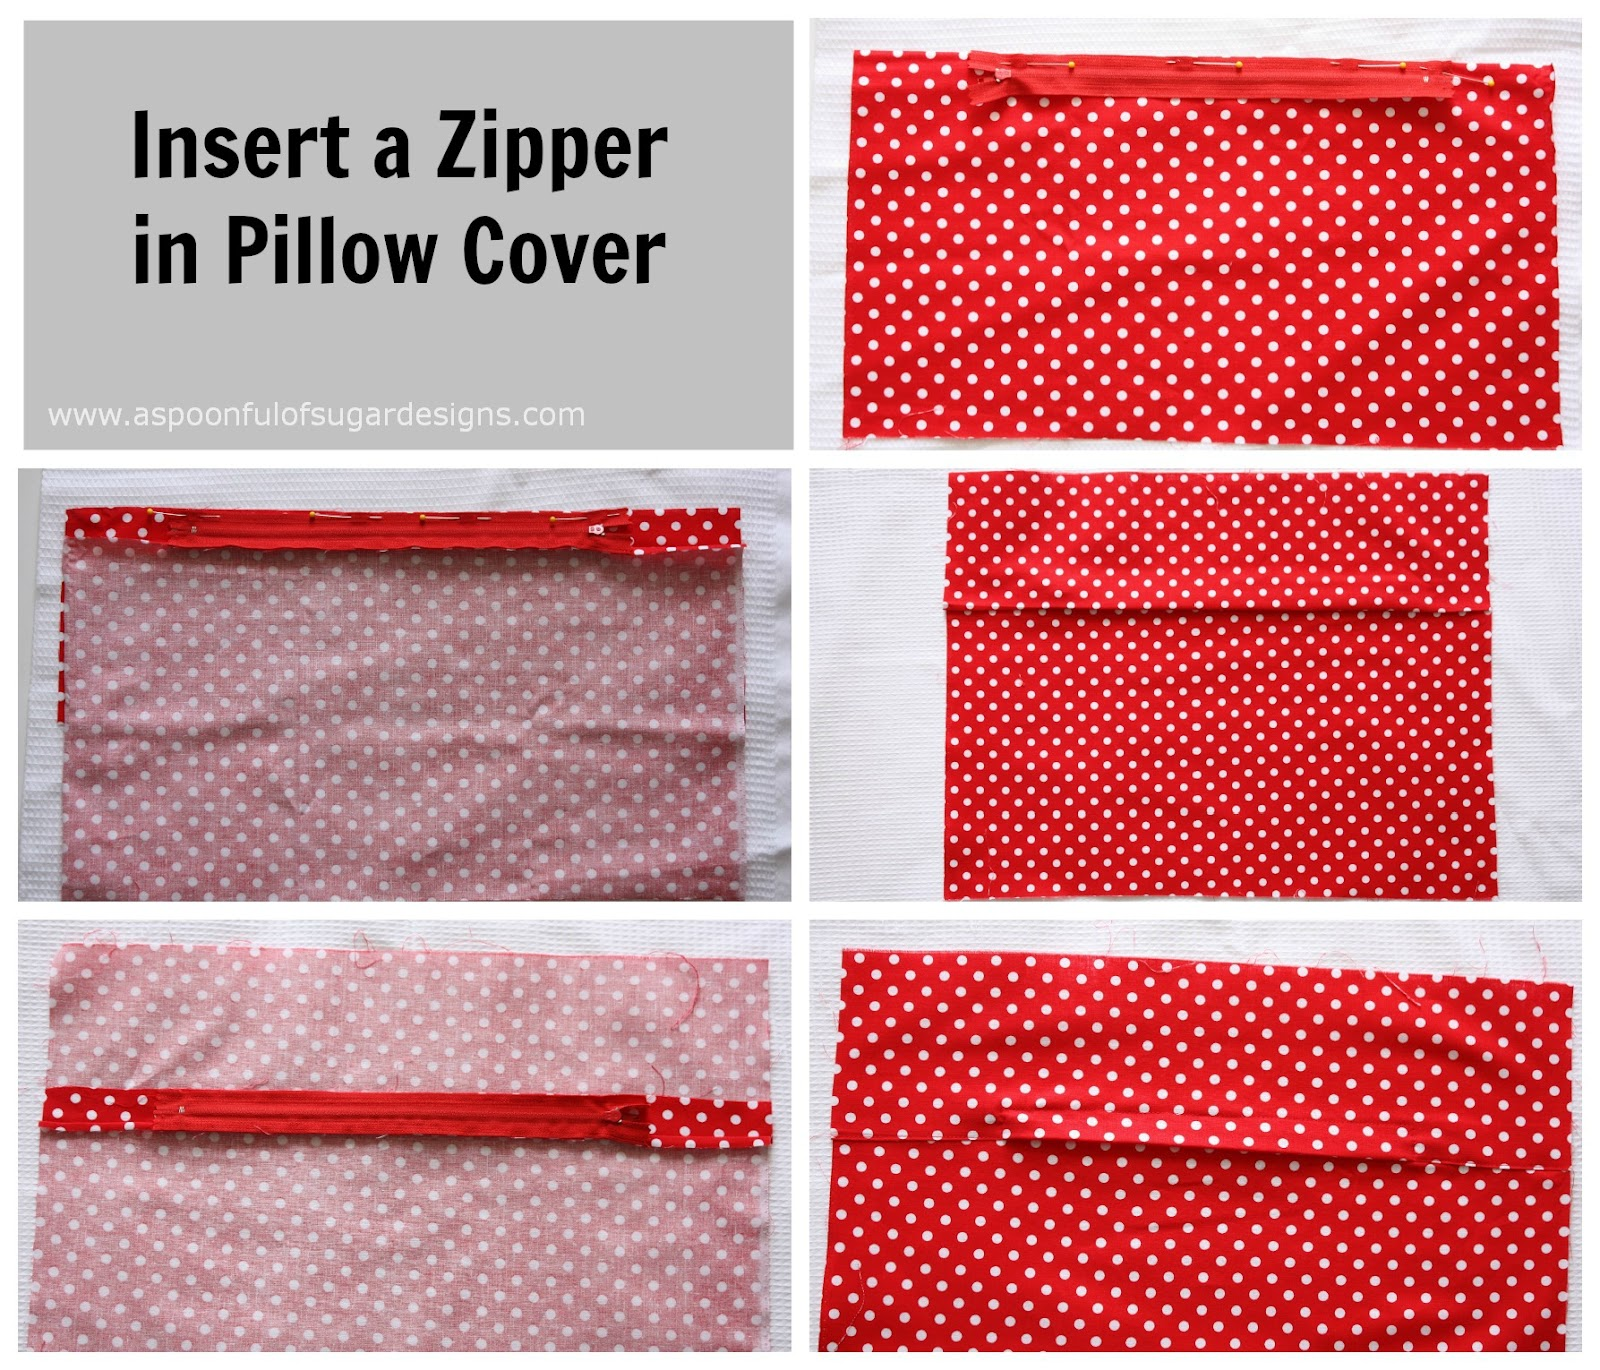 No Zipper Pillow Cover Tutorial: Travel Neck Pillow Cover   A Spoonful of Sugar,